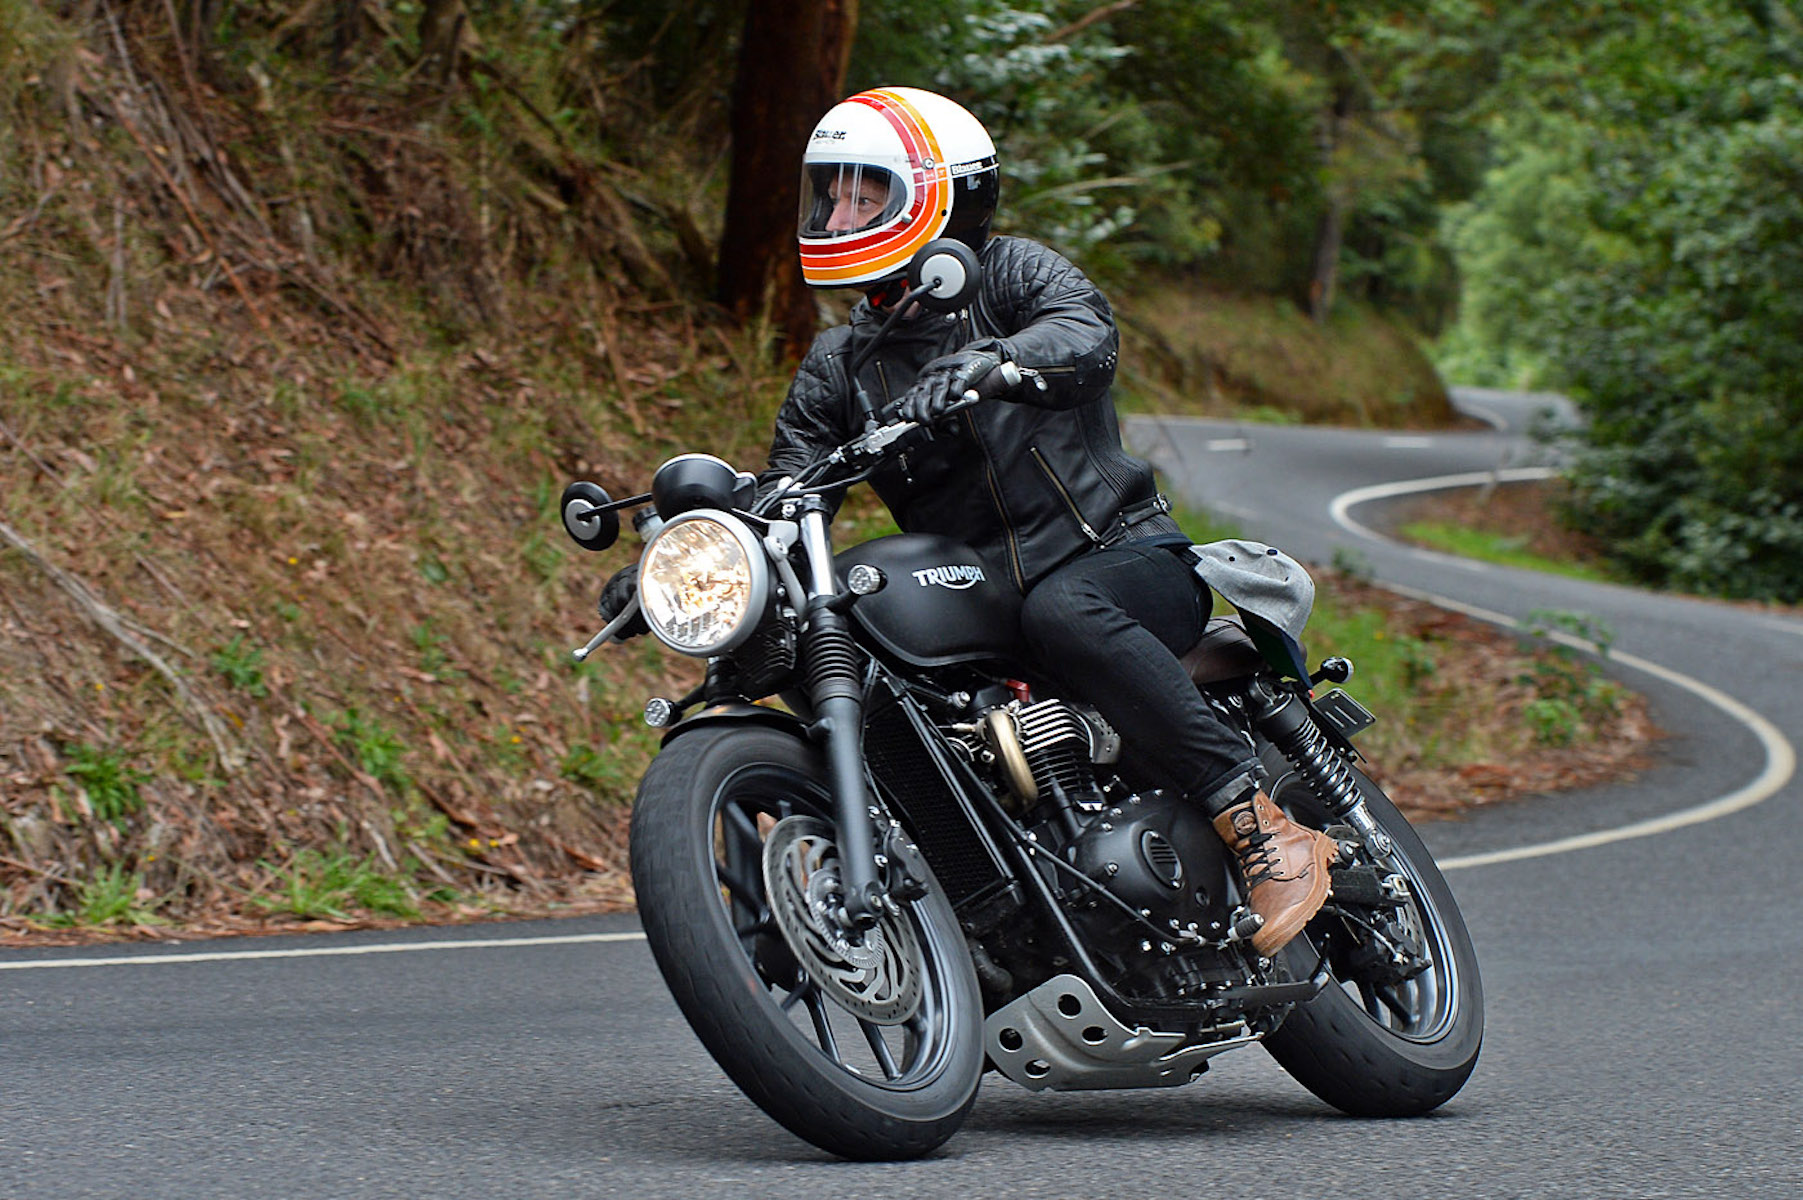 Man rides Triumph motorcycle through forest road in Australia